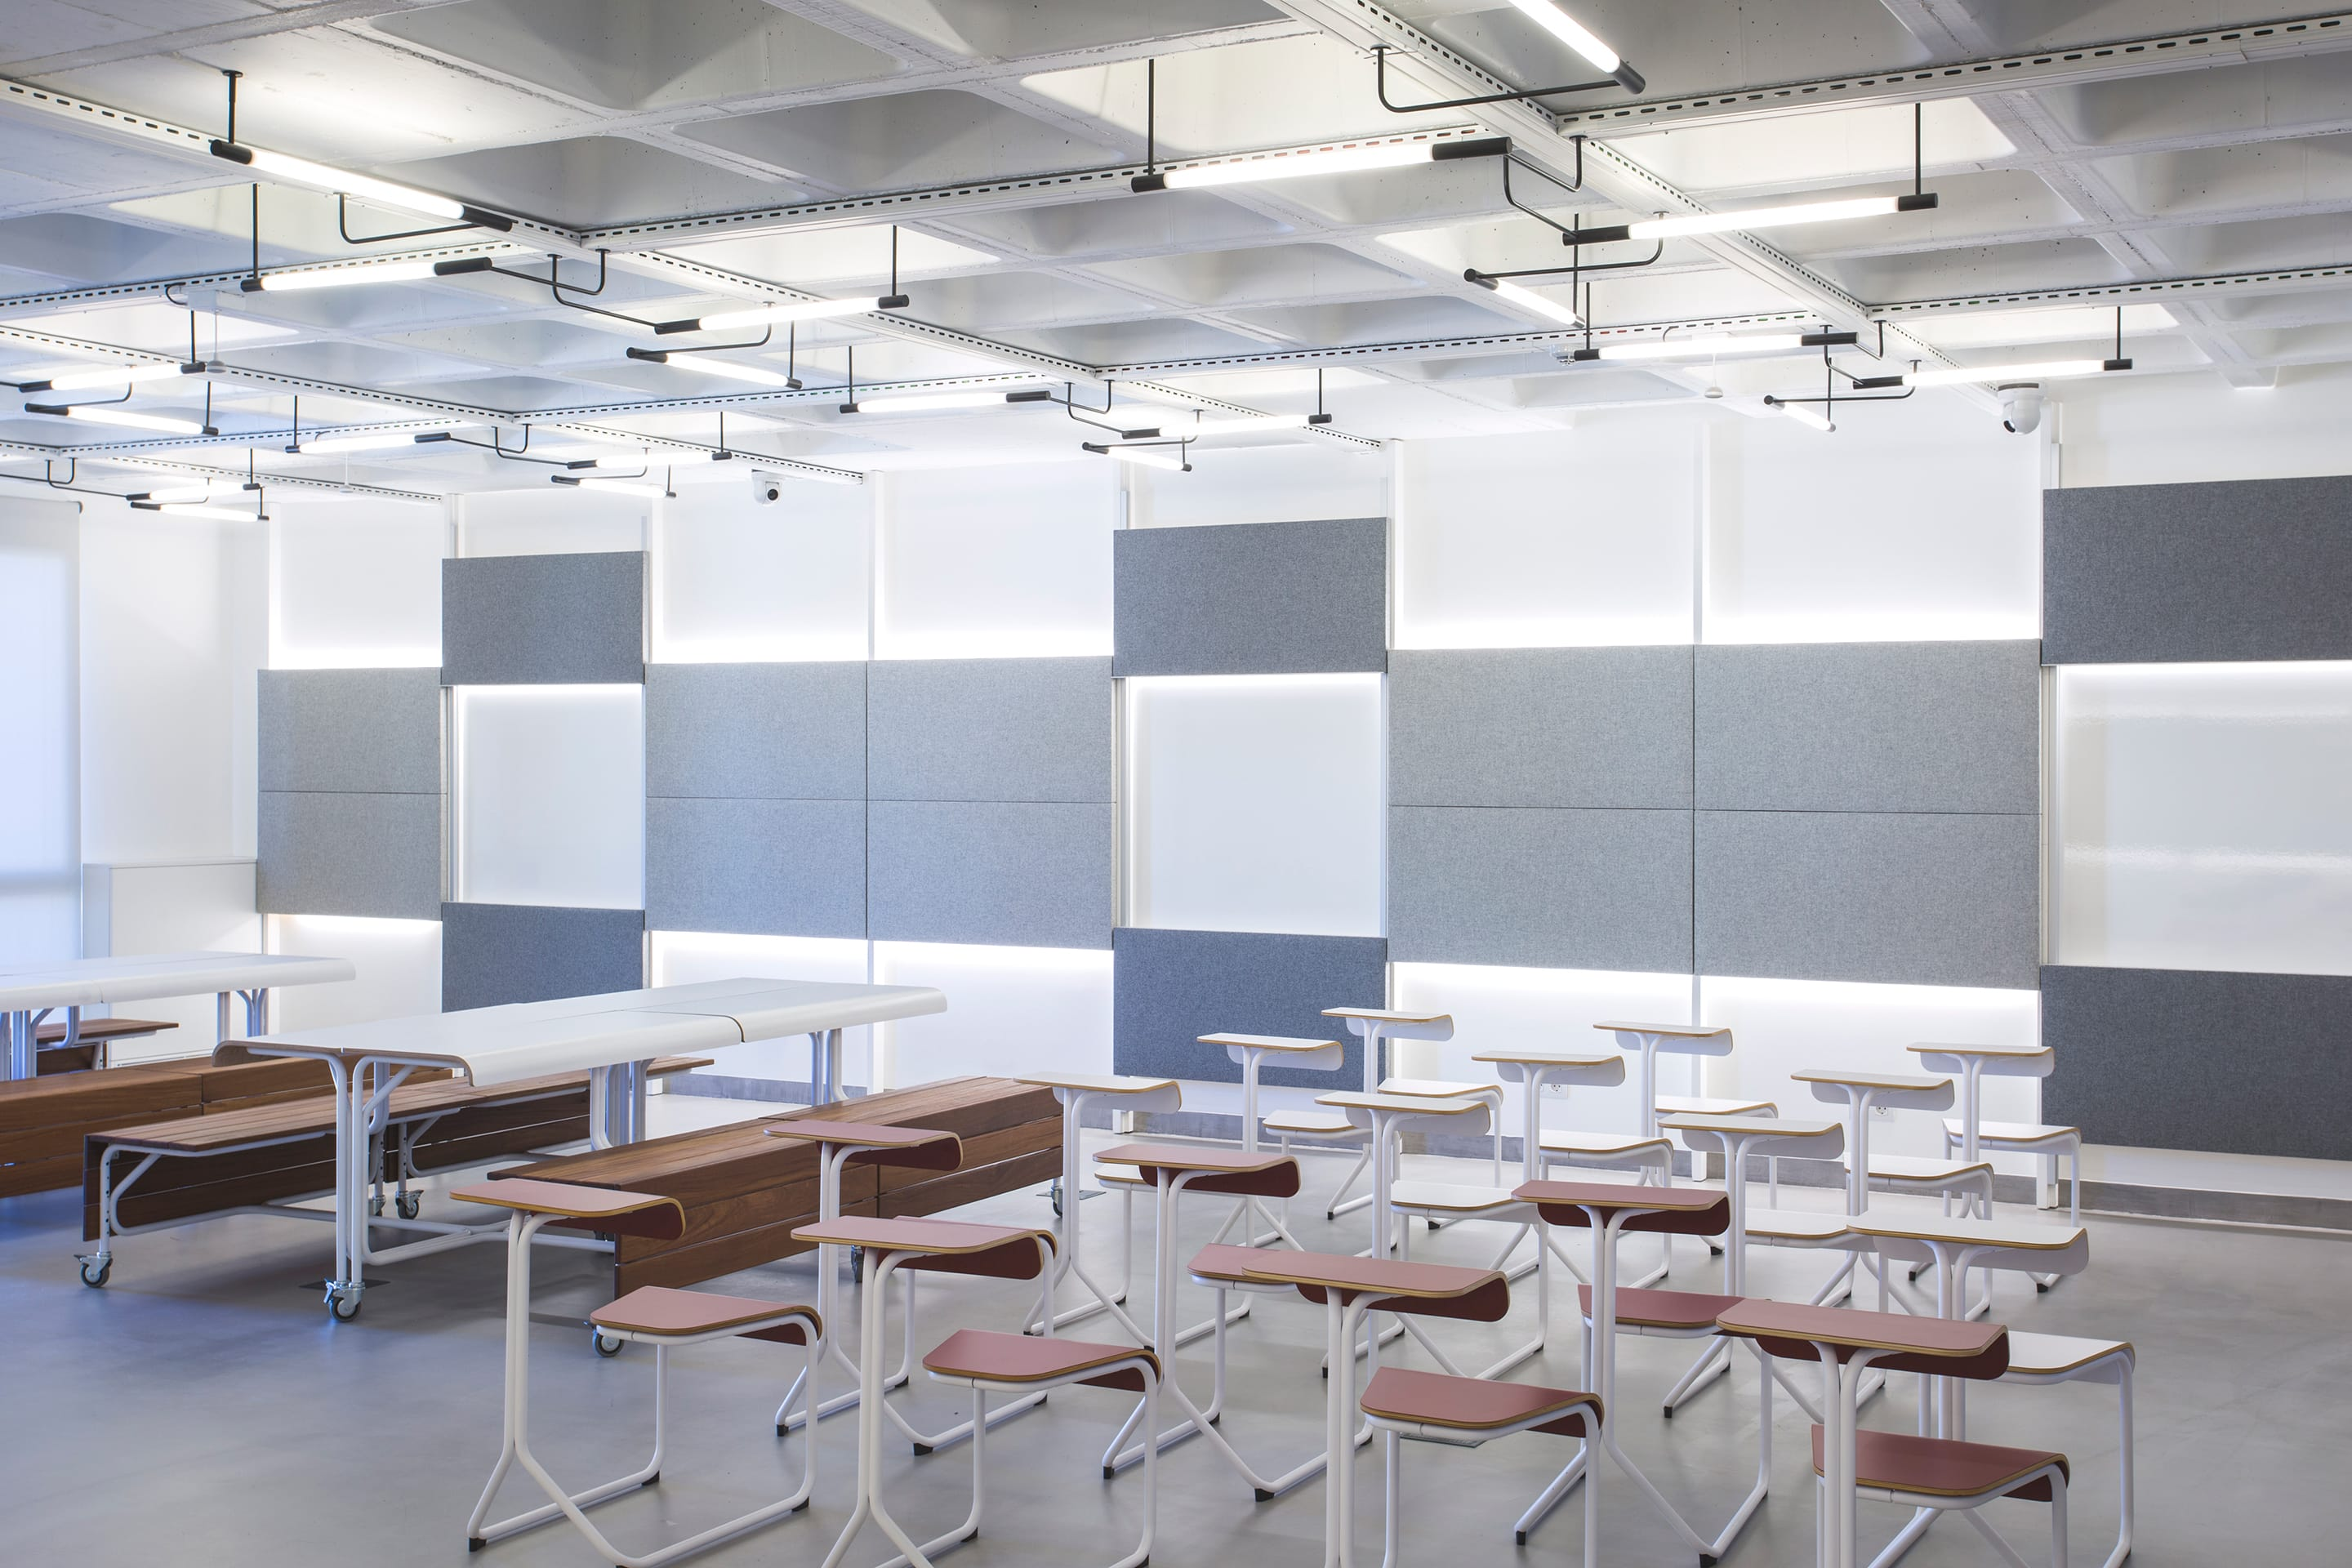 UPF Teaching Spaces, Barcelona School of Management